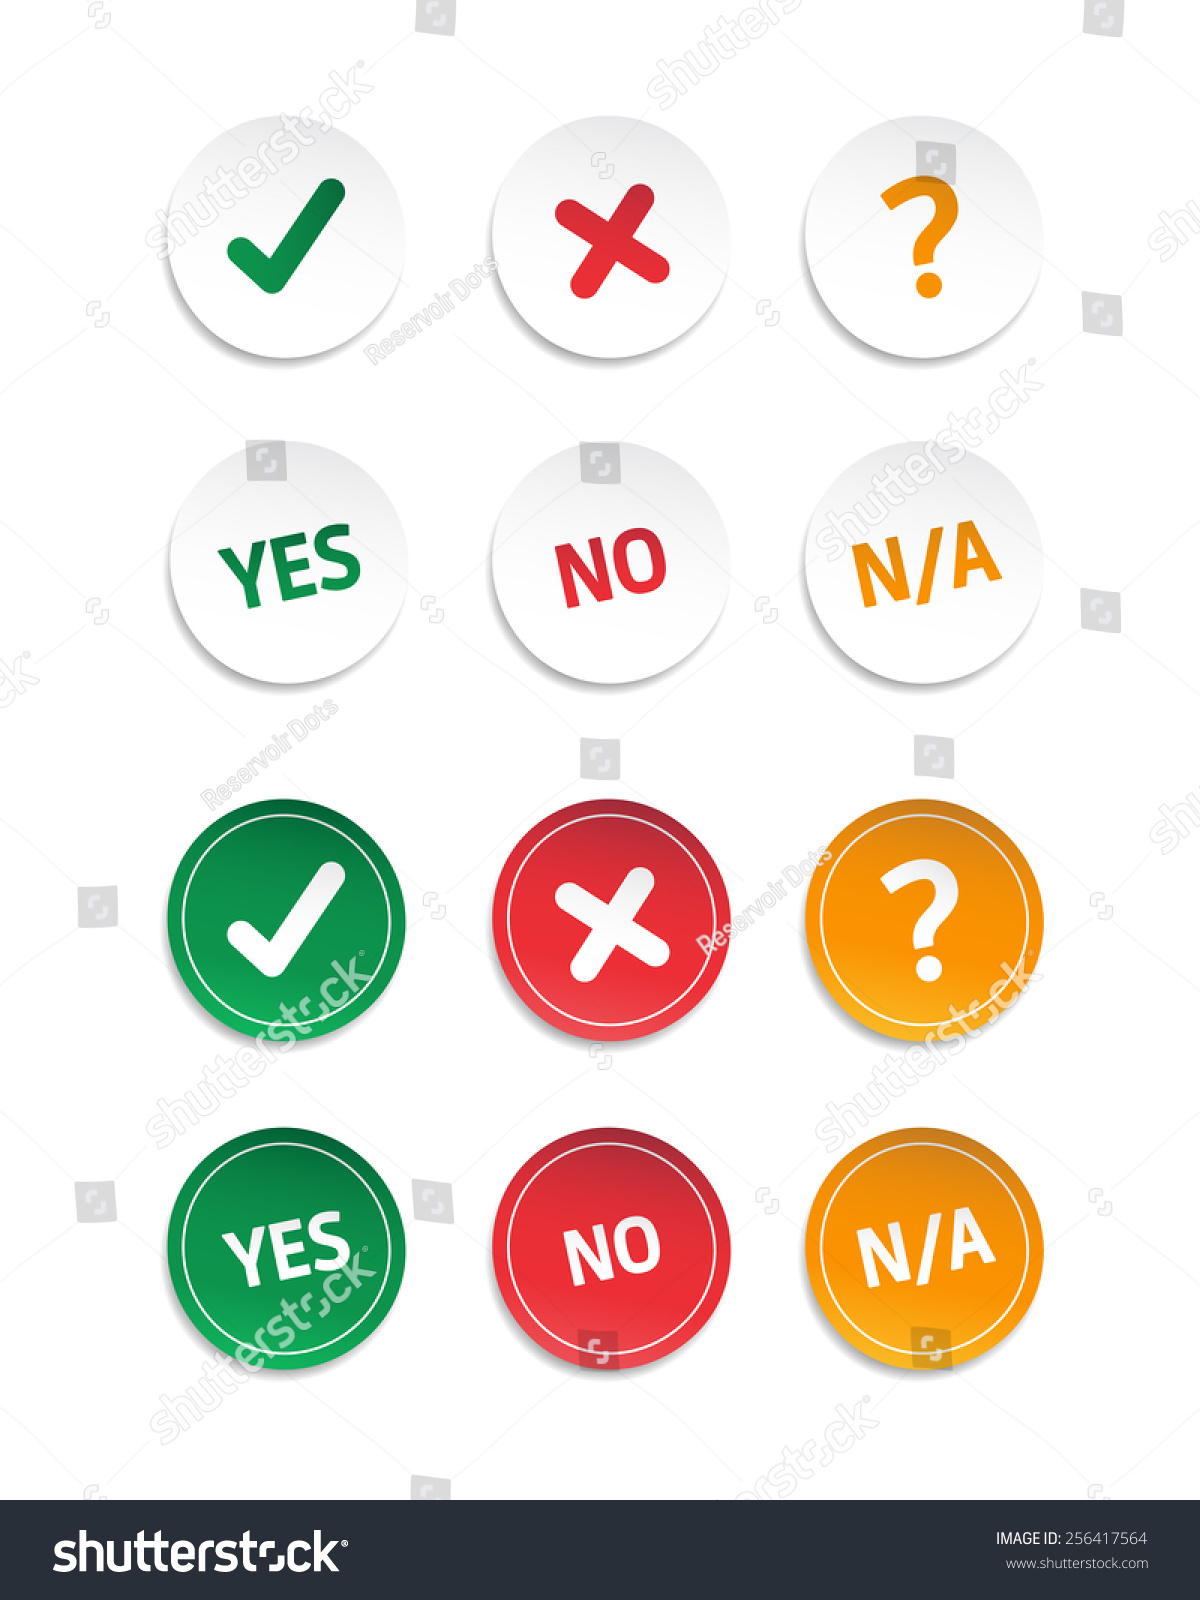 Choice Yes No Na Stickers Stock Vector 256417564